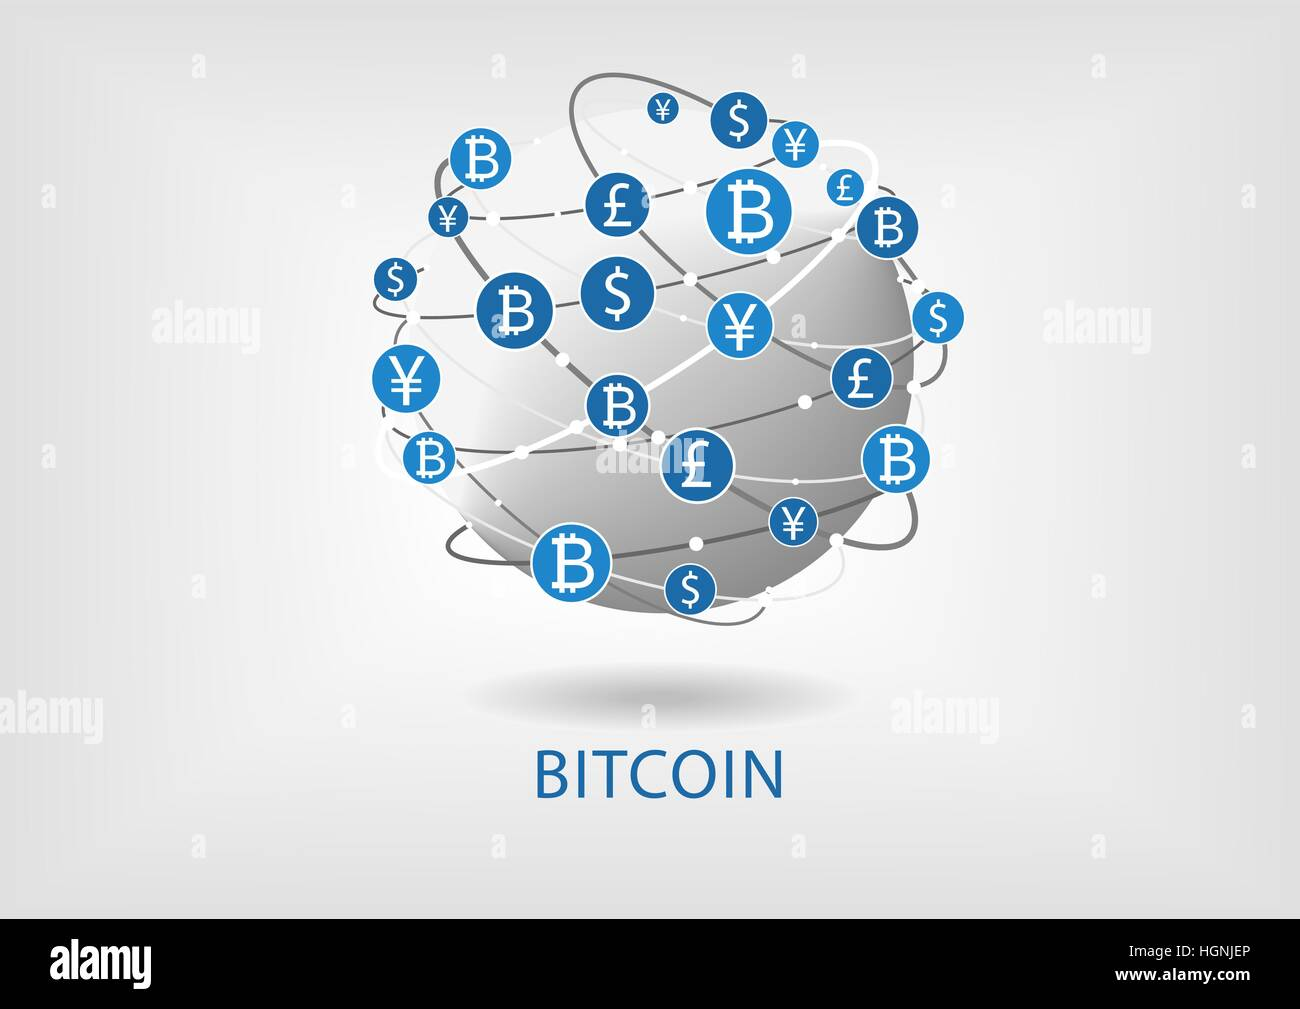 Bitcoin vector illustration of connected world wide web for internal money transfer - Stock Image